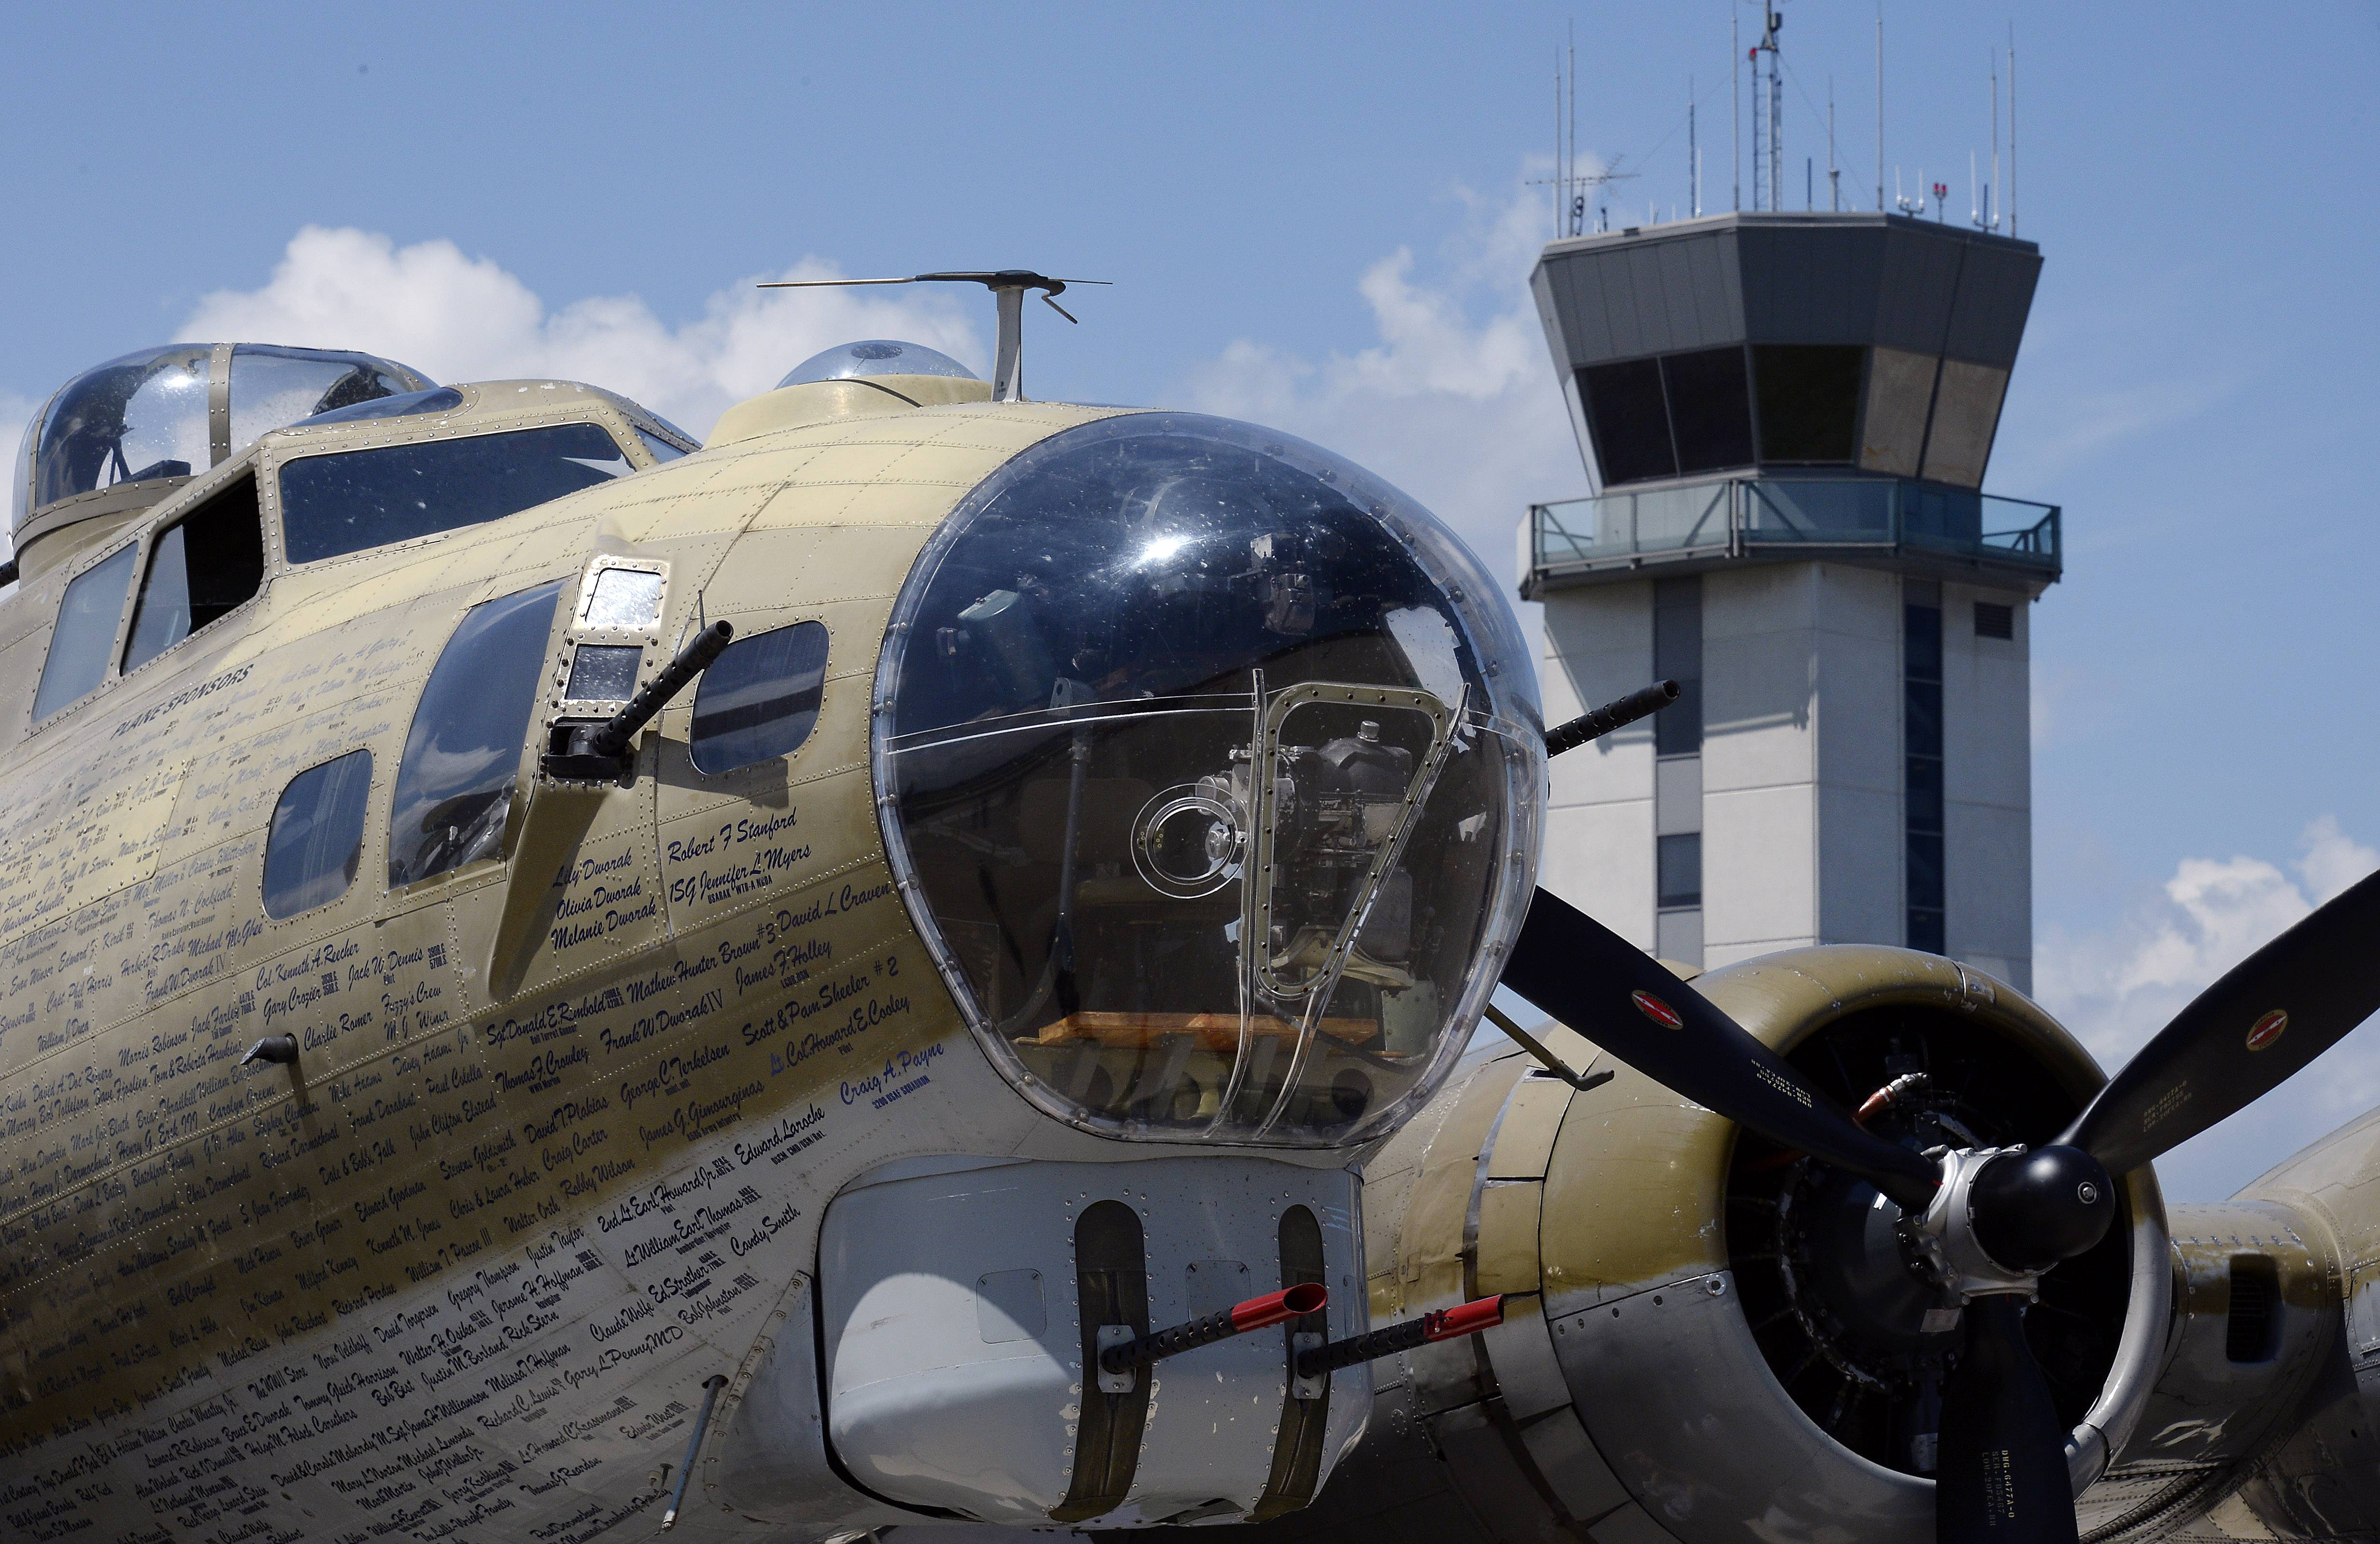 The World War II vintage Boeing B-17 Flying Fortress looms large on the tarmac at Chicago Executive Airport in Wheeling.